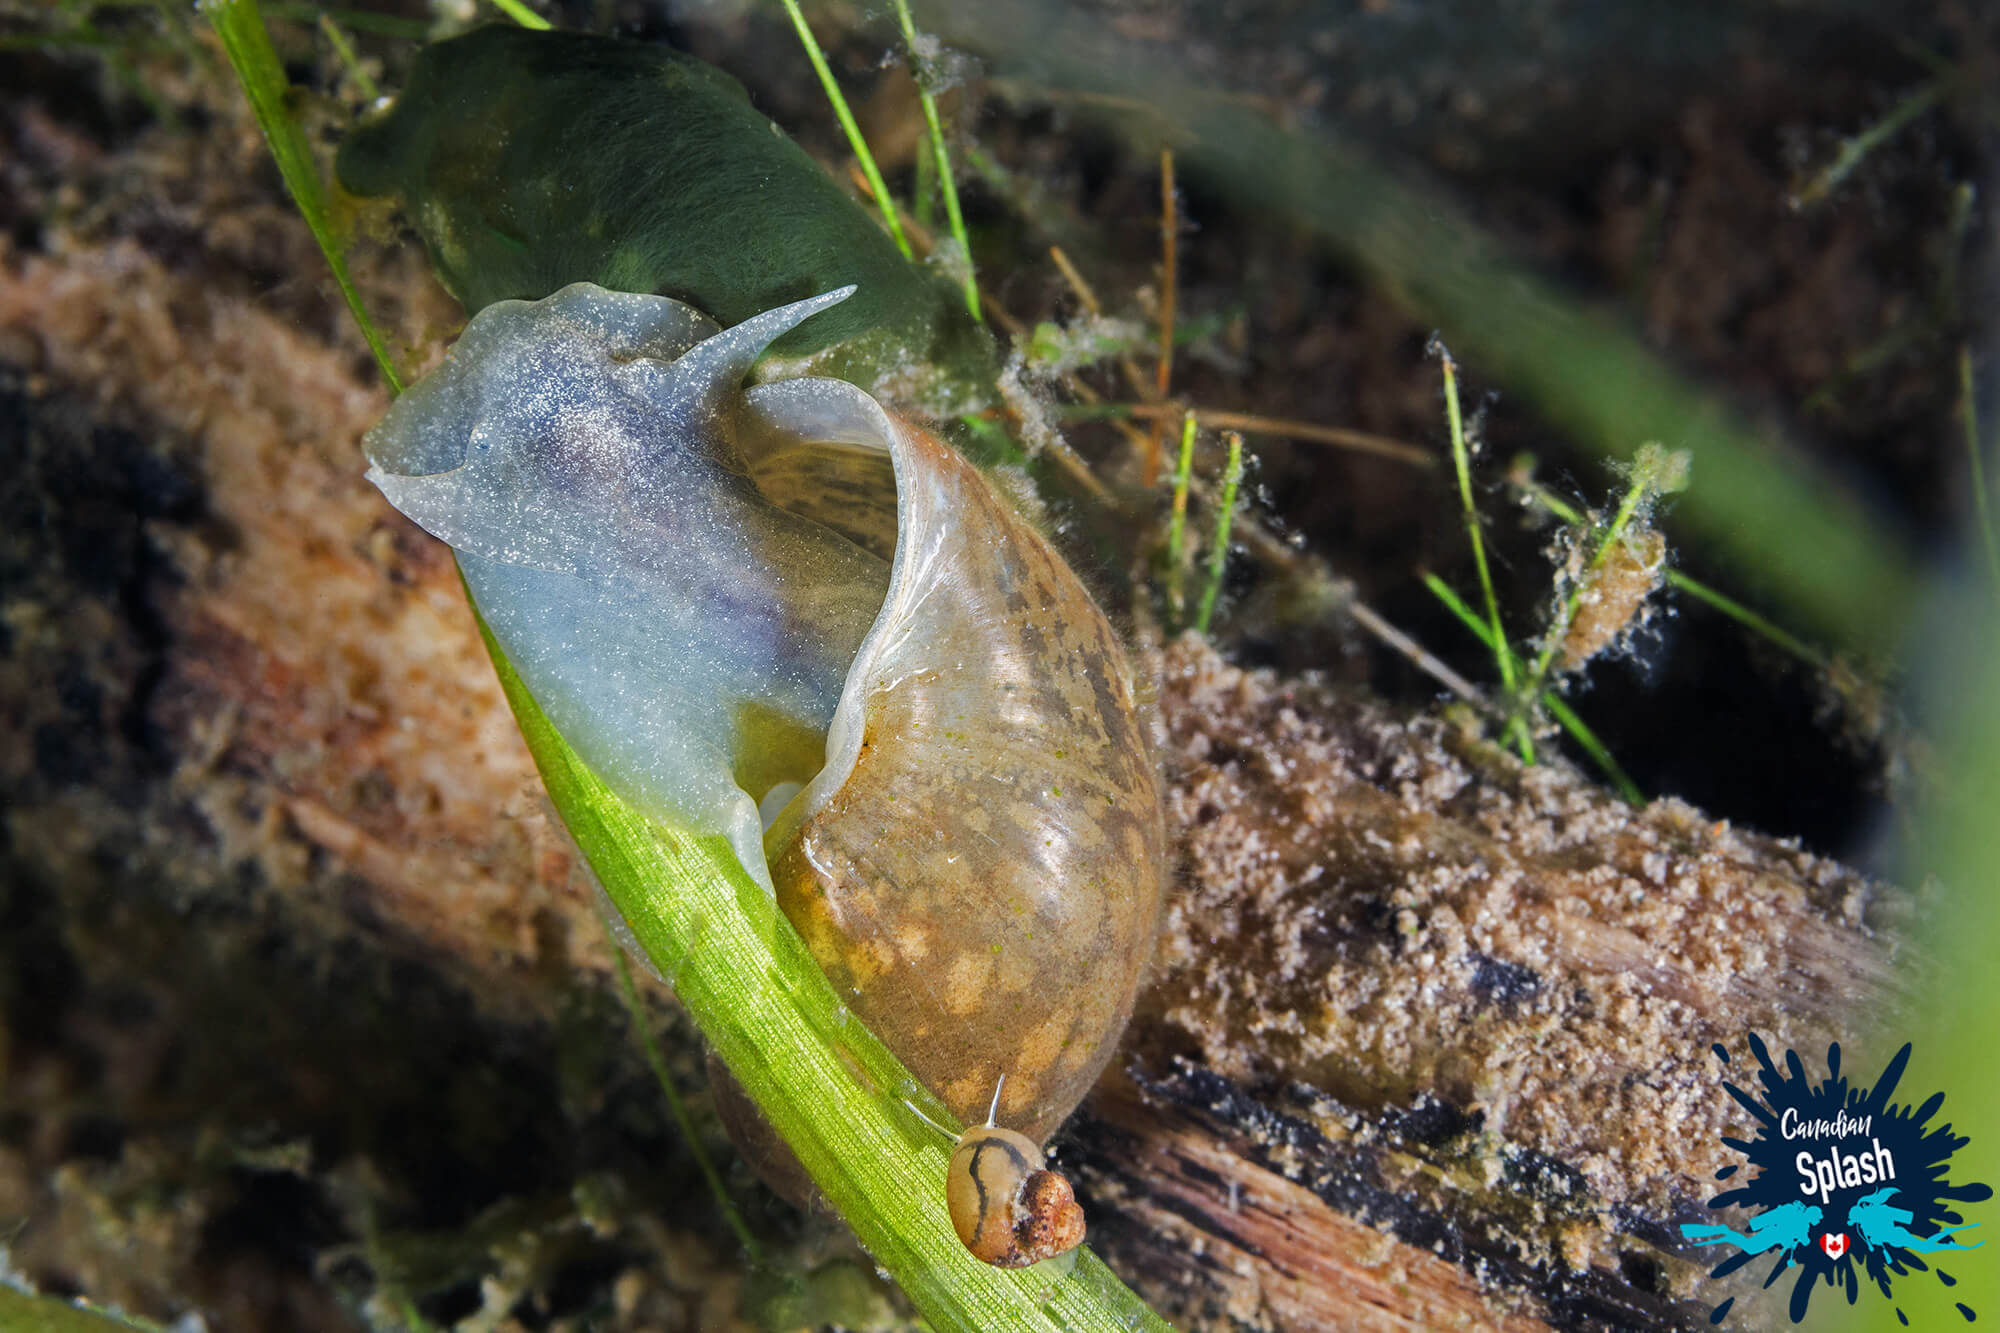 A Pair Of Aquatic Snails Feeding Underwater In Finlayson Point Provincial Park, Ontario Parks, Scuba Diving Canada